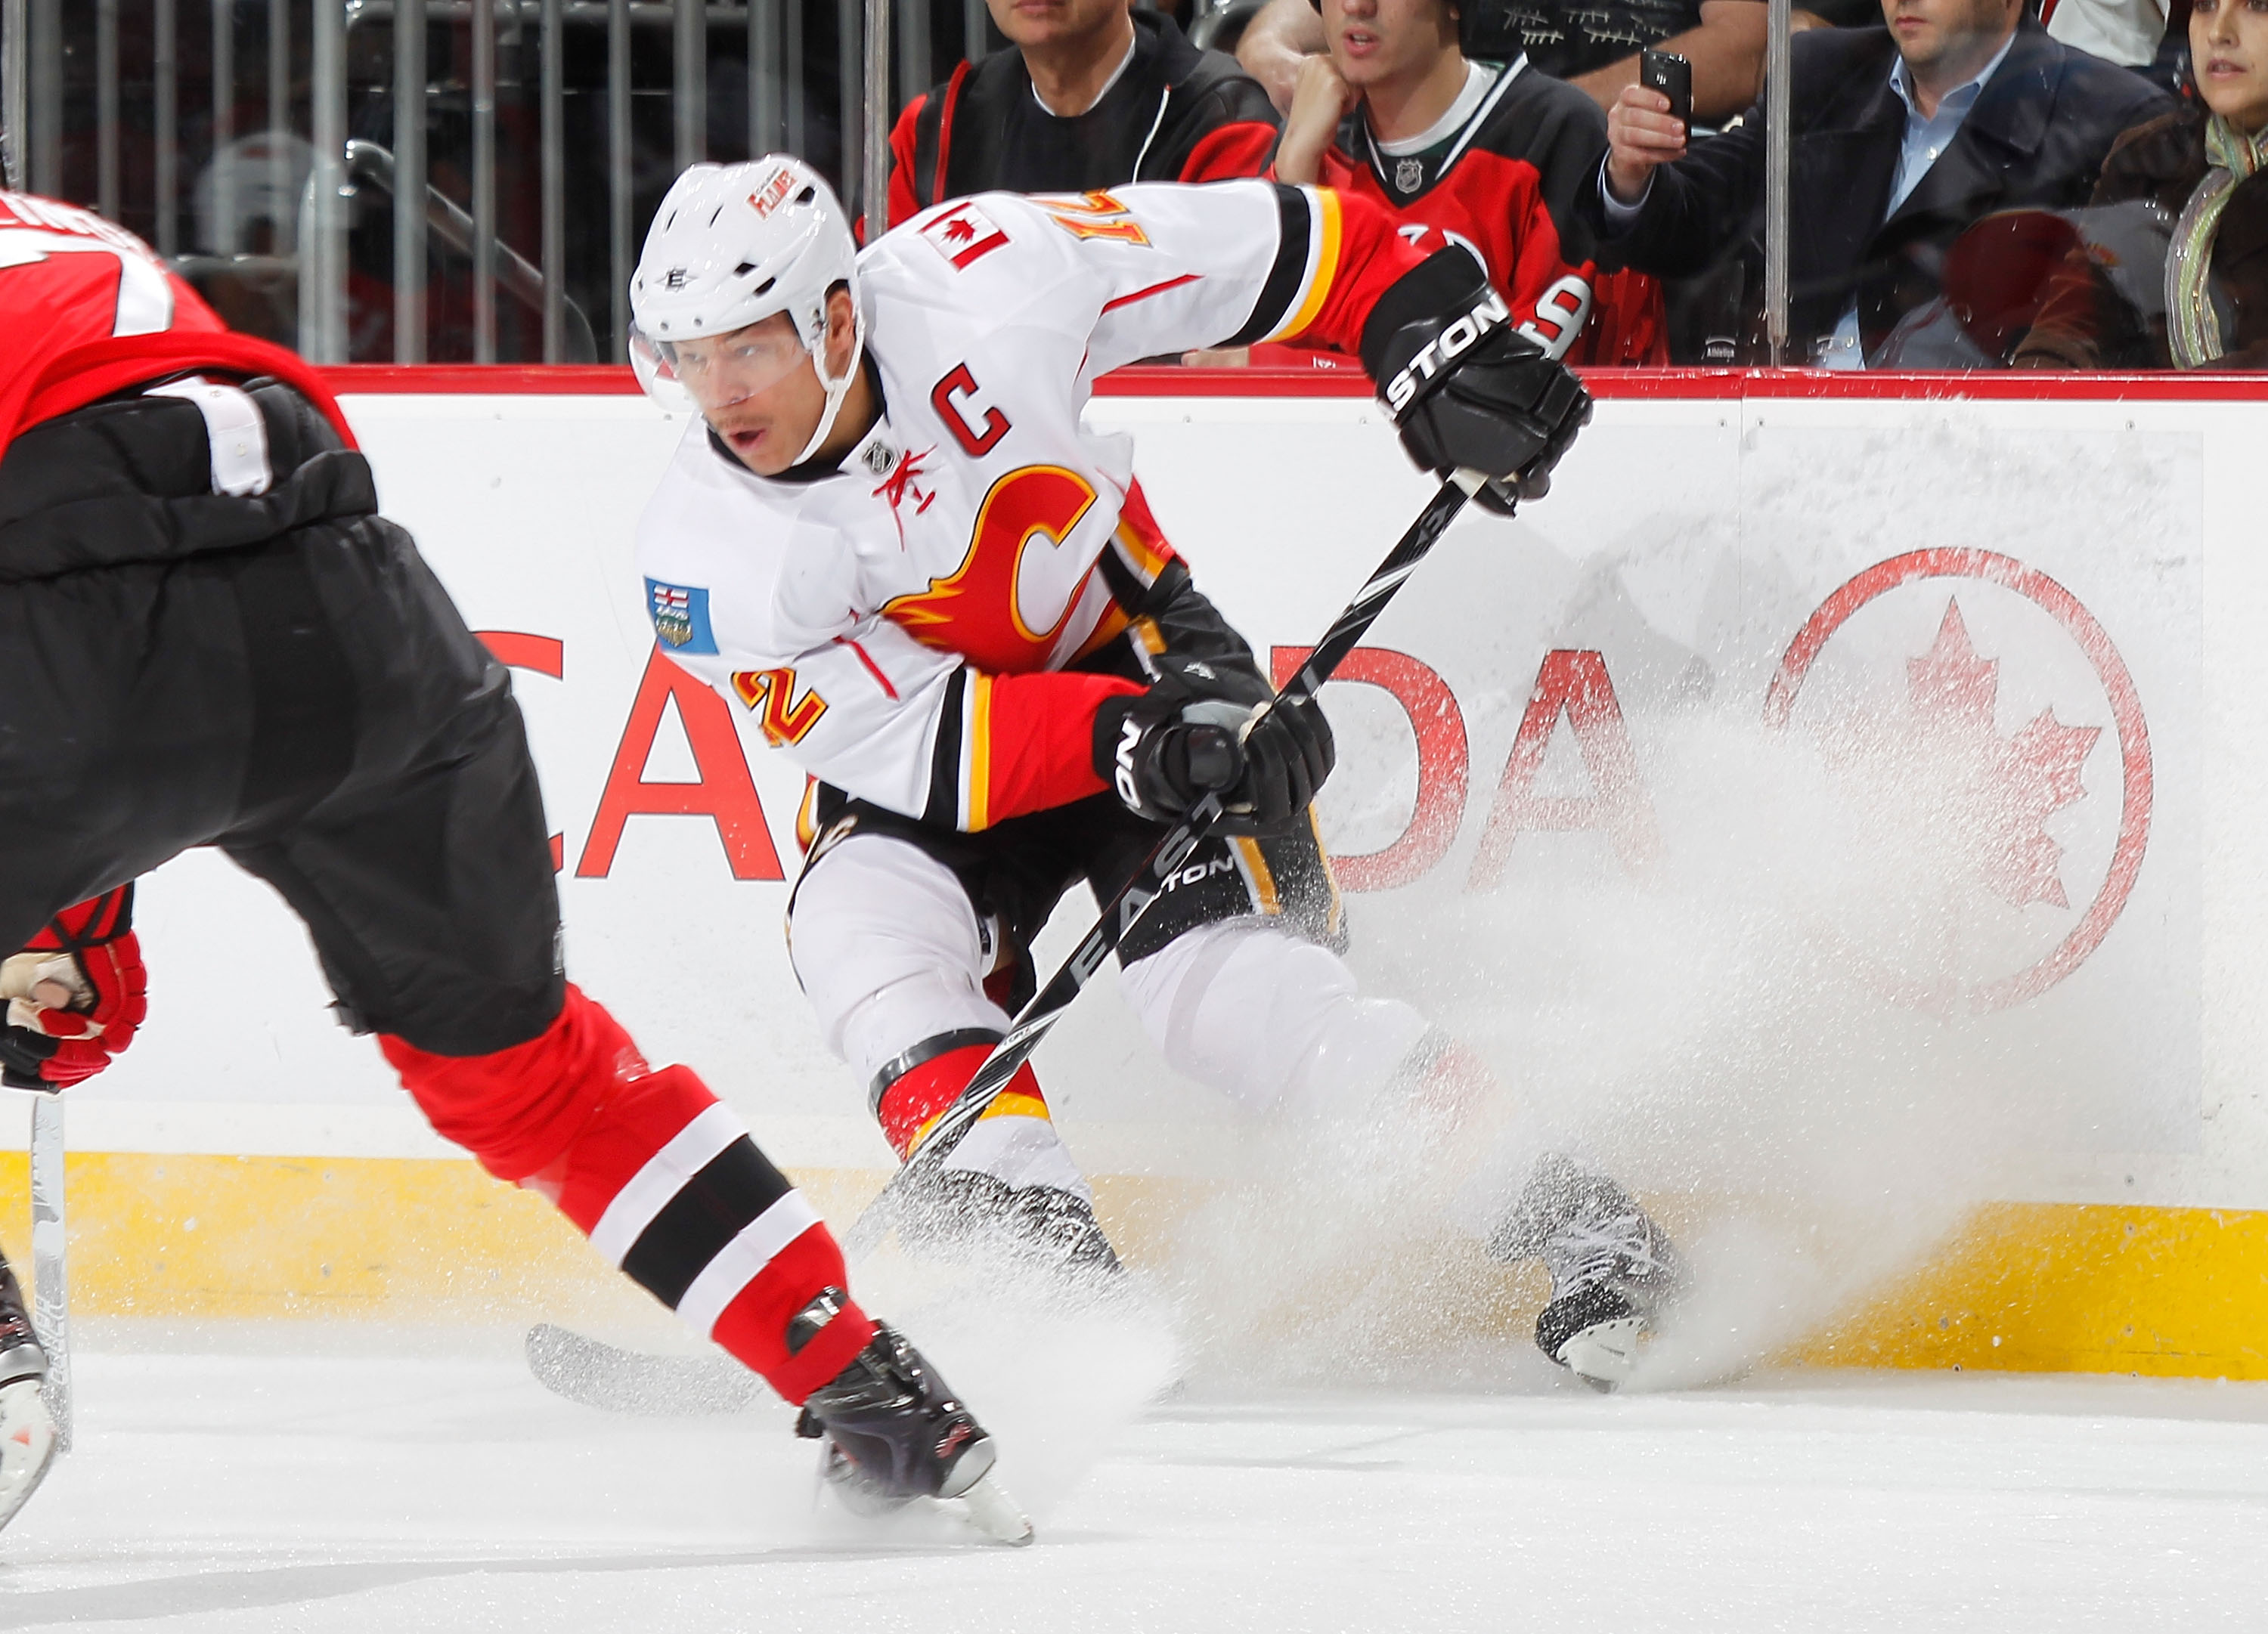 NEWARK, NJ - NOVEMBER 24:  Jarome Iginla #12 of the Calgary Flames skates during a hockey game against the New Jersey Devils at the Prudential Center on November 24, 2010 in Newark, New Jersey.  (Photo by Paul Bereswill/Getty Images)